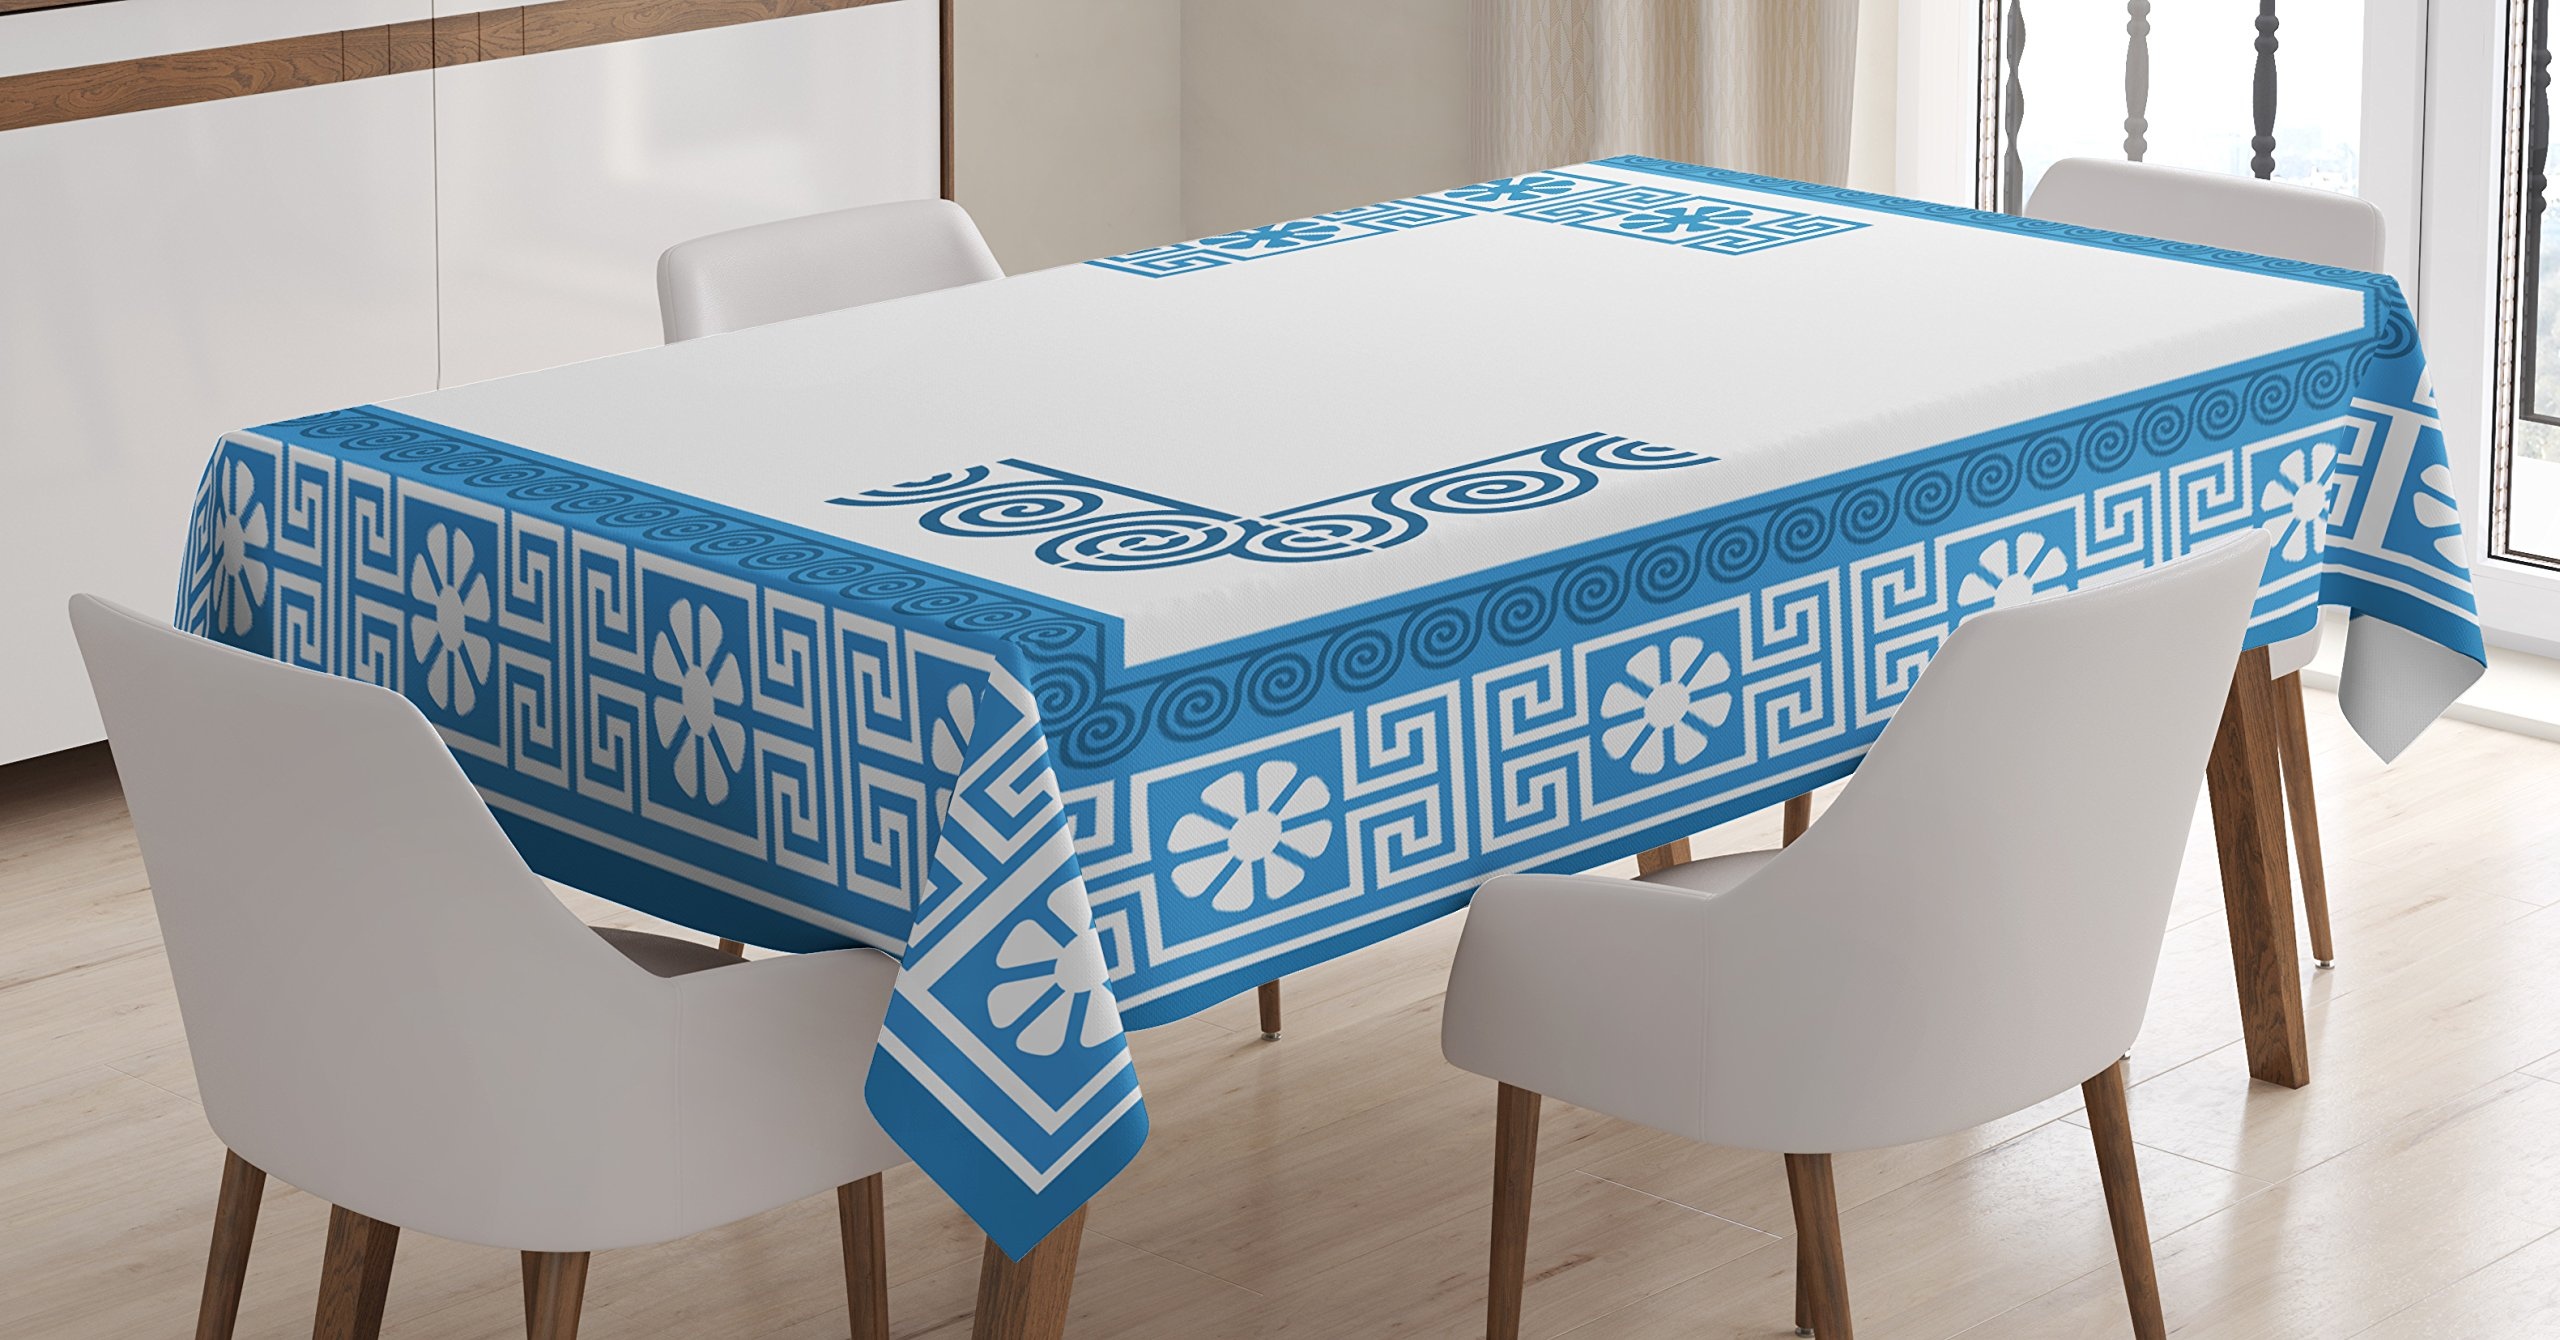 Ambesonne Greek Key Tablecloth, Frame with Traditional Vintage Blue Square with White Flowers and Fret Pattern, Dining Room Kitchen Rectangular Table Cover, 52 W X 70 L inches, Blue White